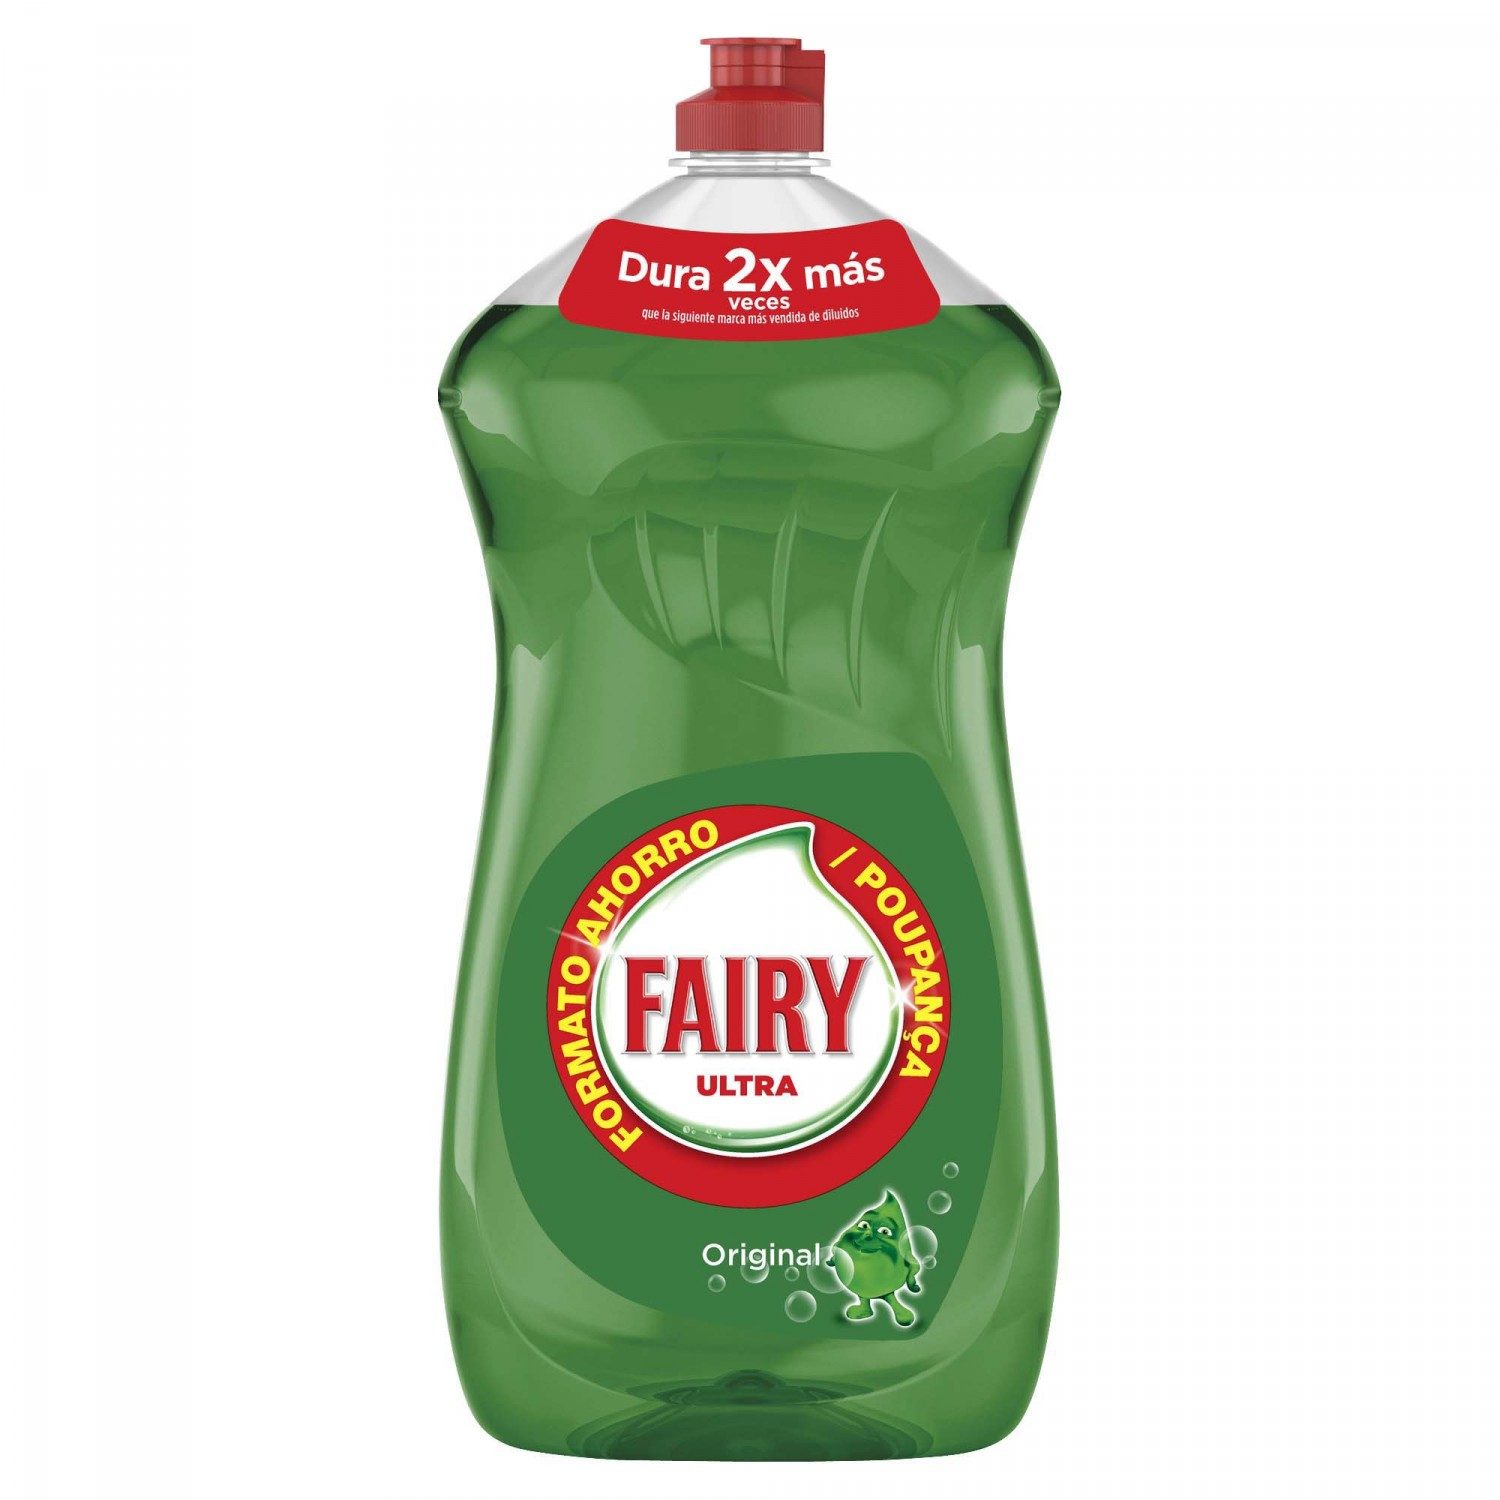 Fairy ultra lavavajillas mano concentrado regular de 1,25l. en botella